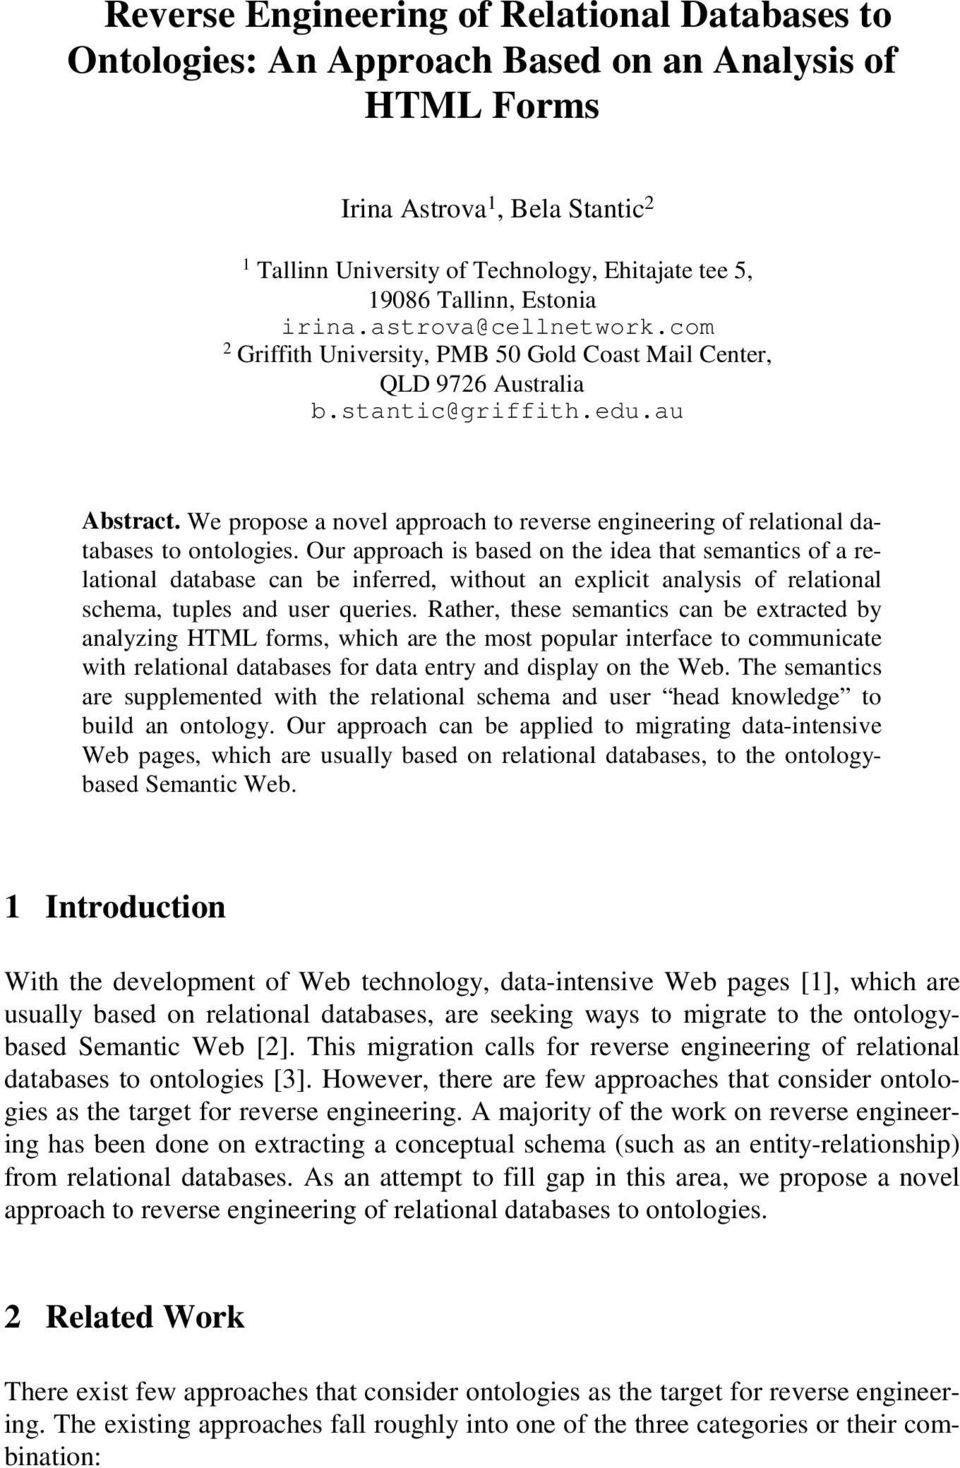 We propose a novel approach to reverse engineering of relational databases to ontologies.